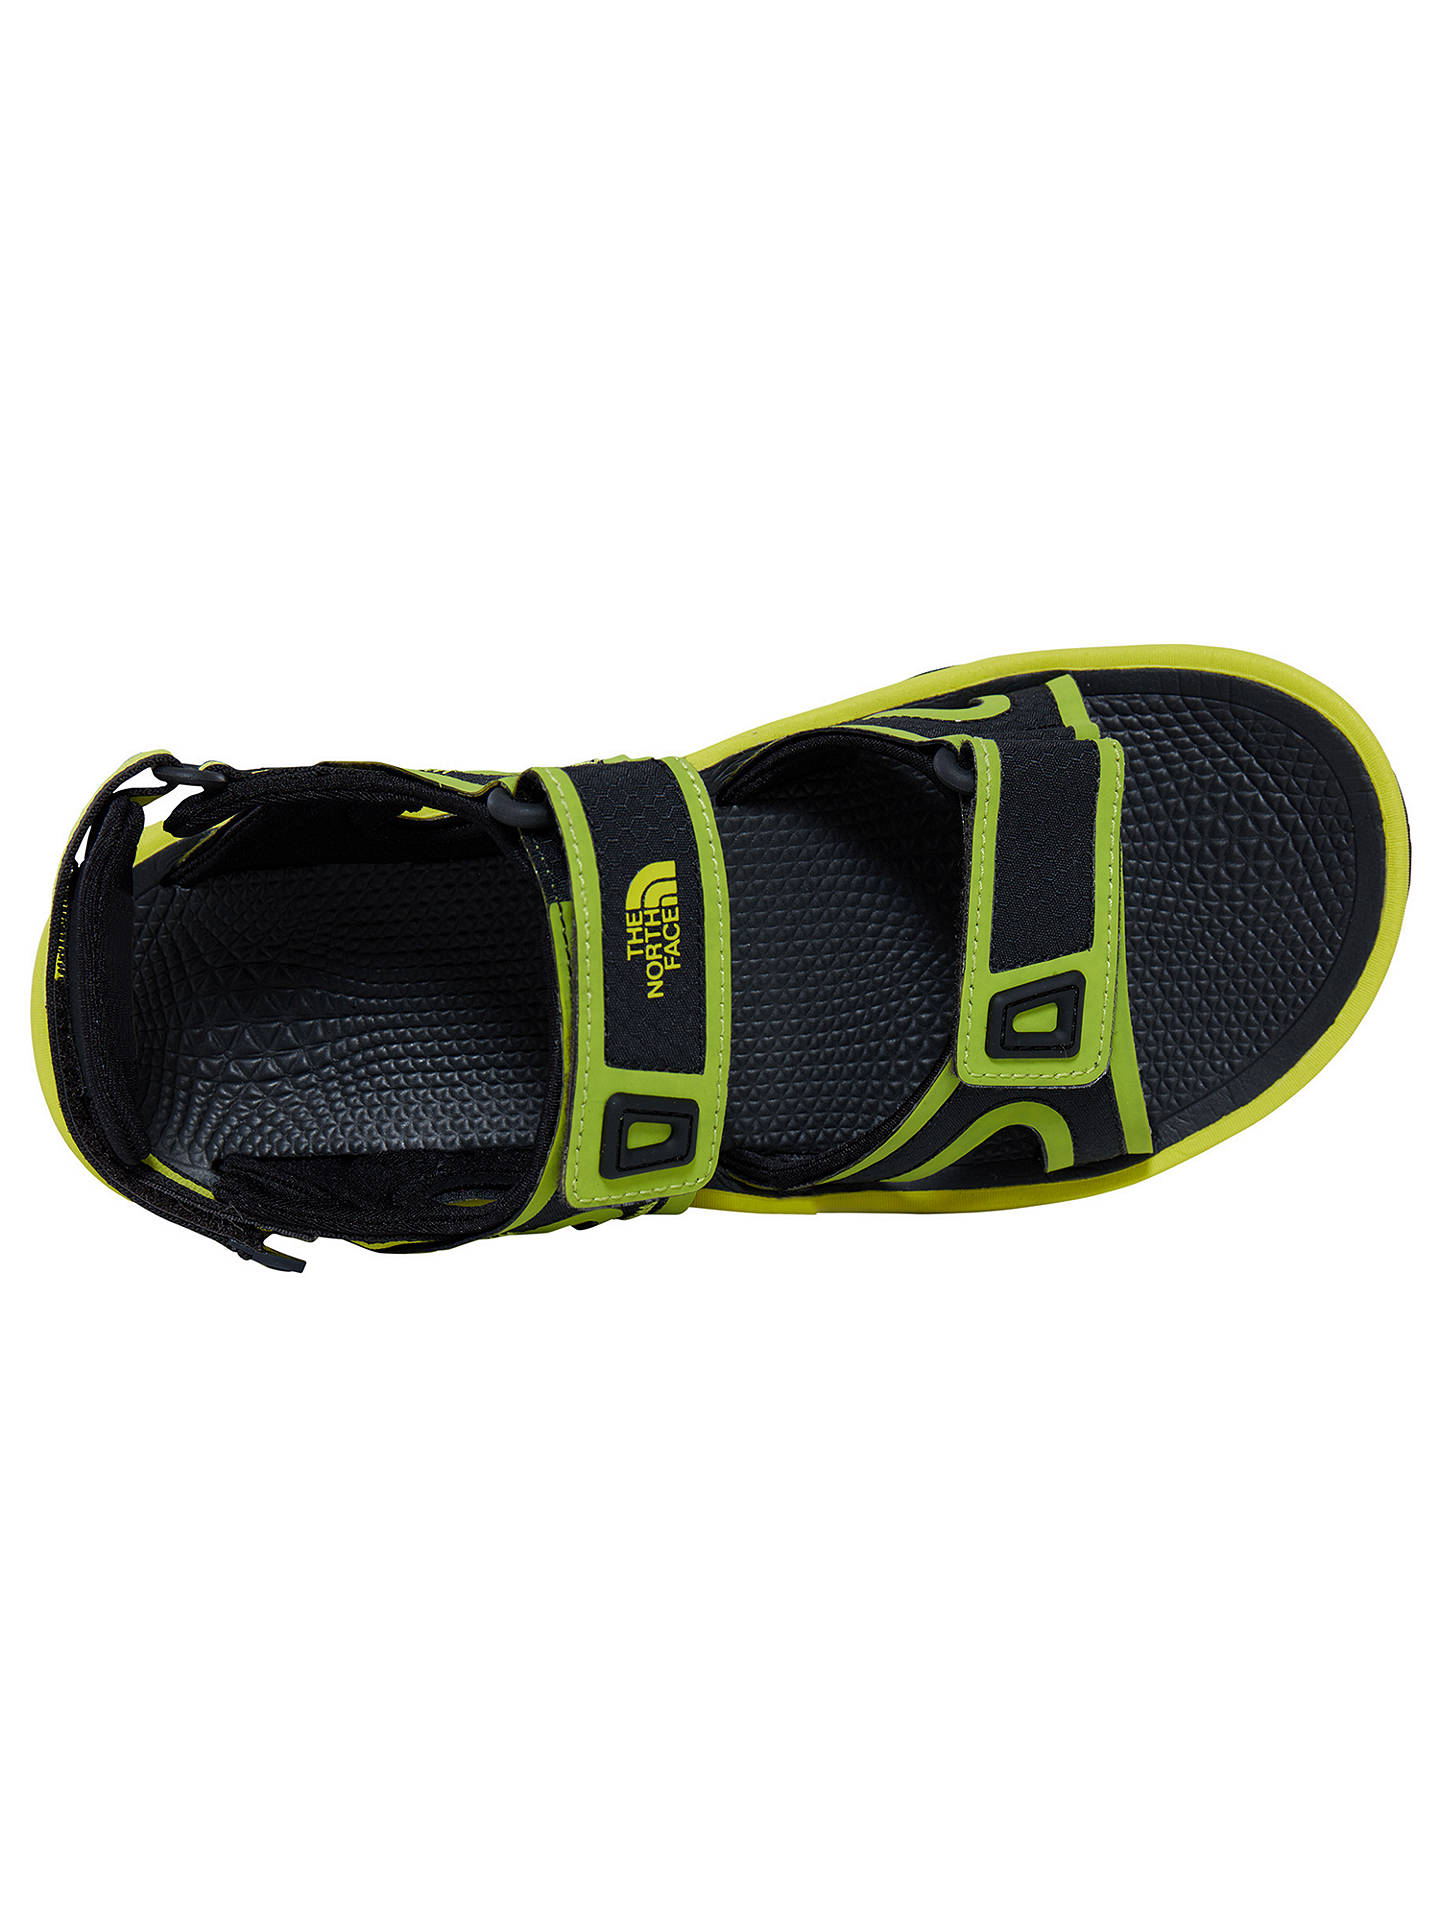 df6dd0105 The North Face Hedgehog II Men's Sandals, Green at John Lewis & Partners